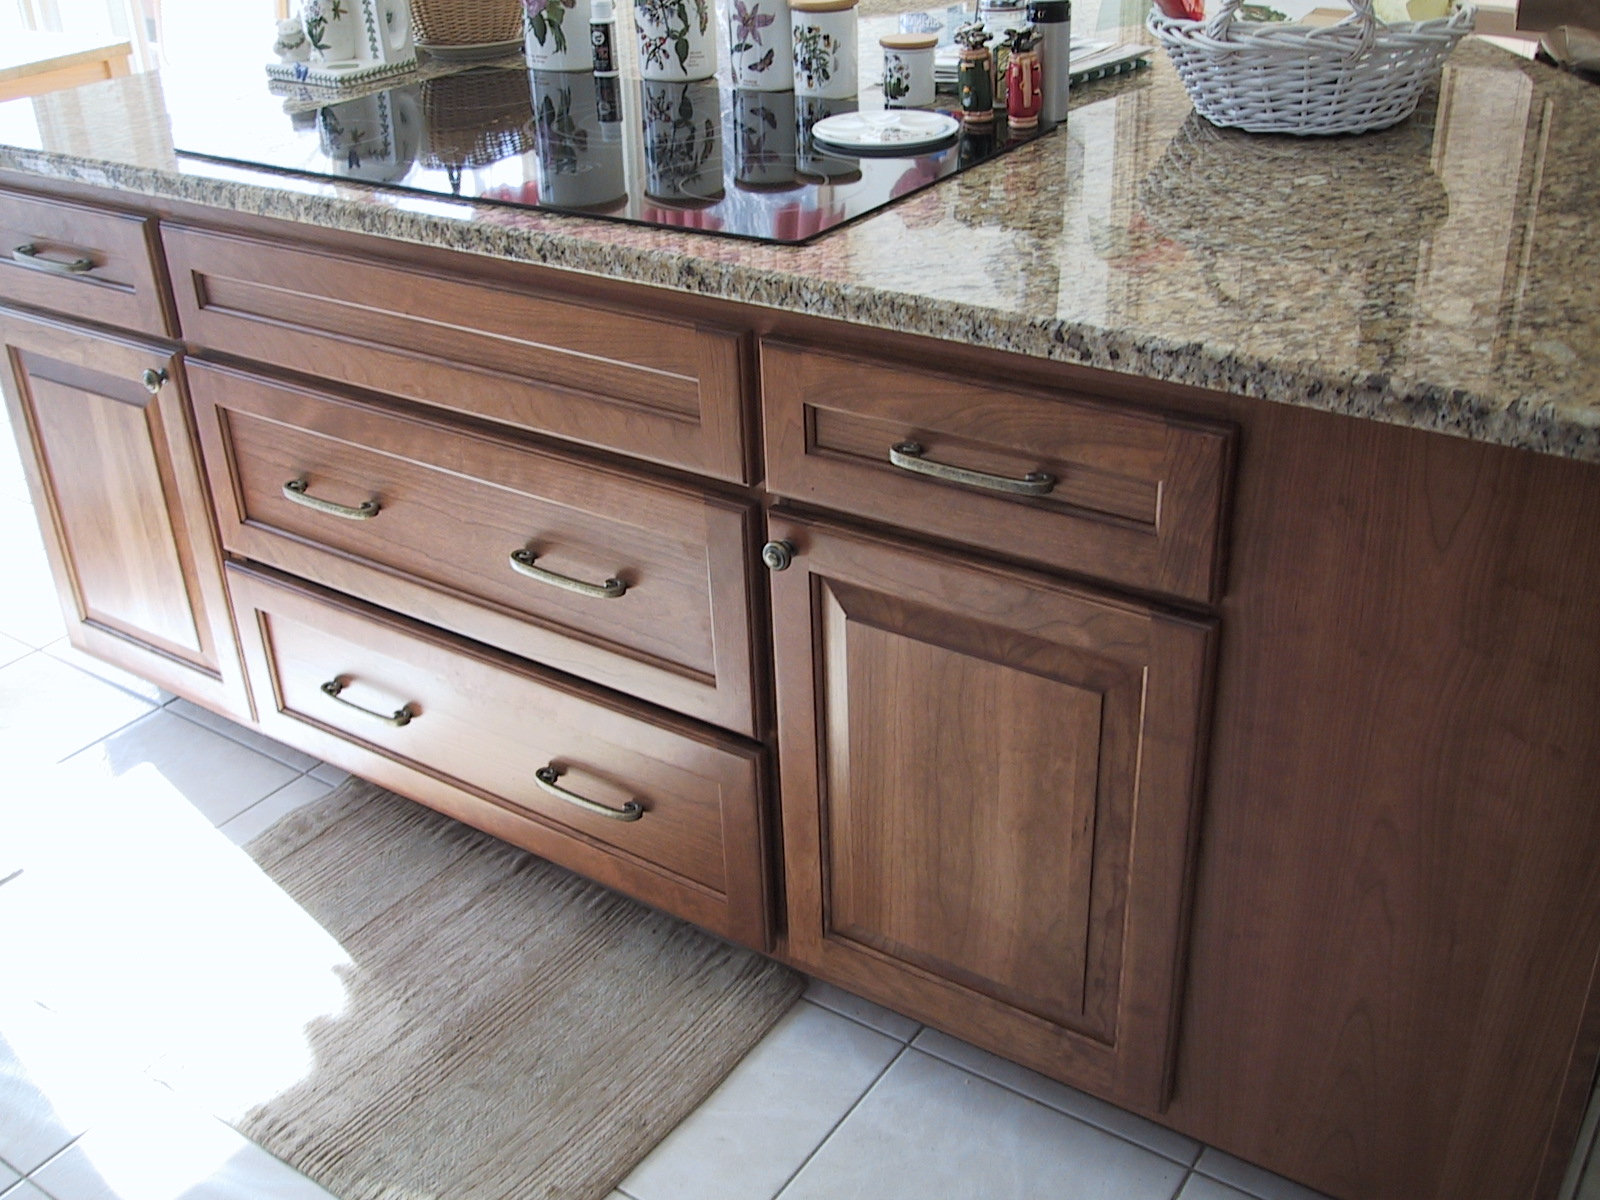 Kitchen Countertop Cabinets Replace Cabinets Keep Countertops Possible